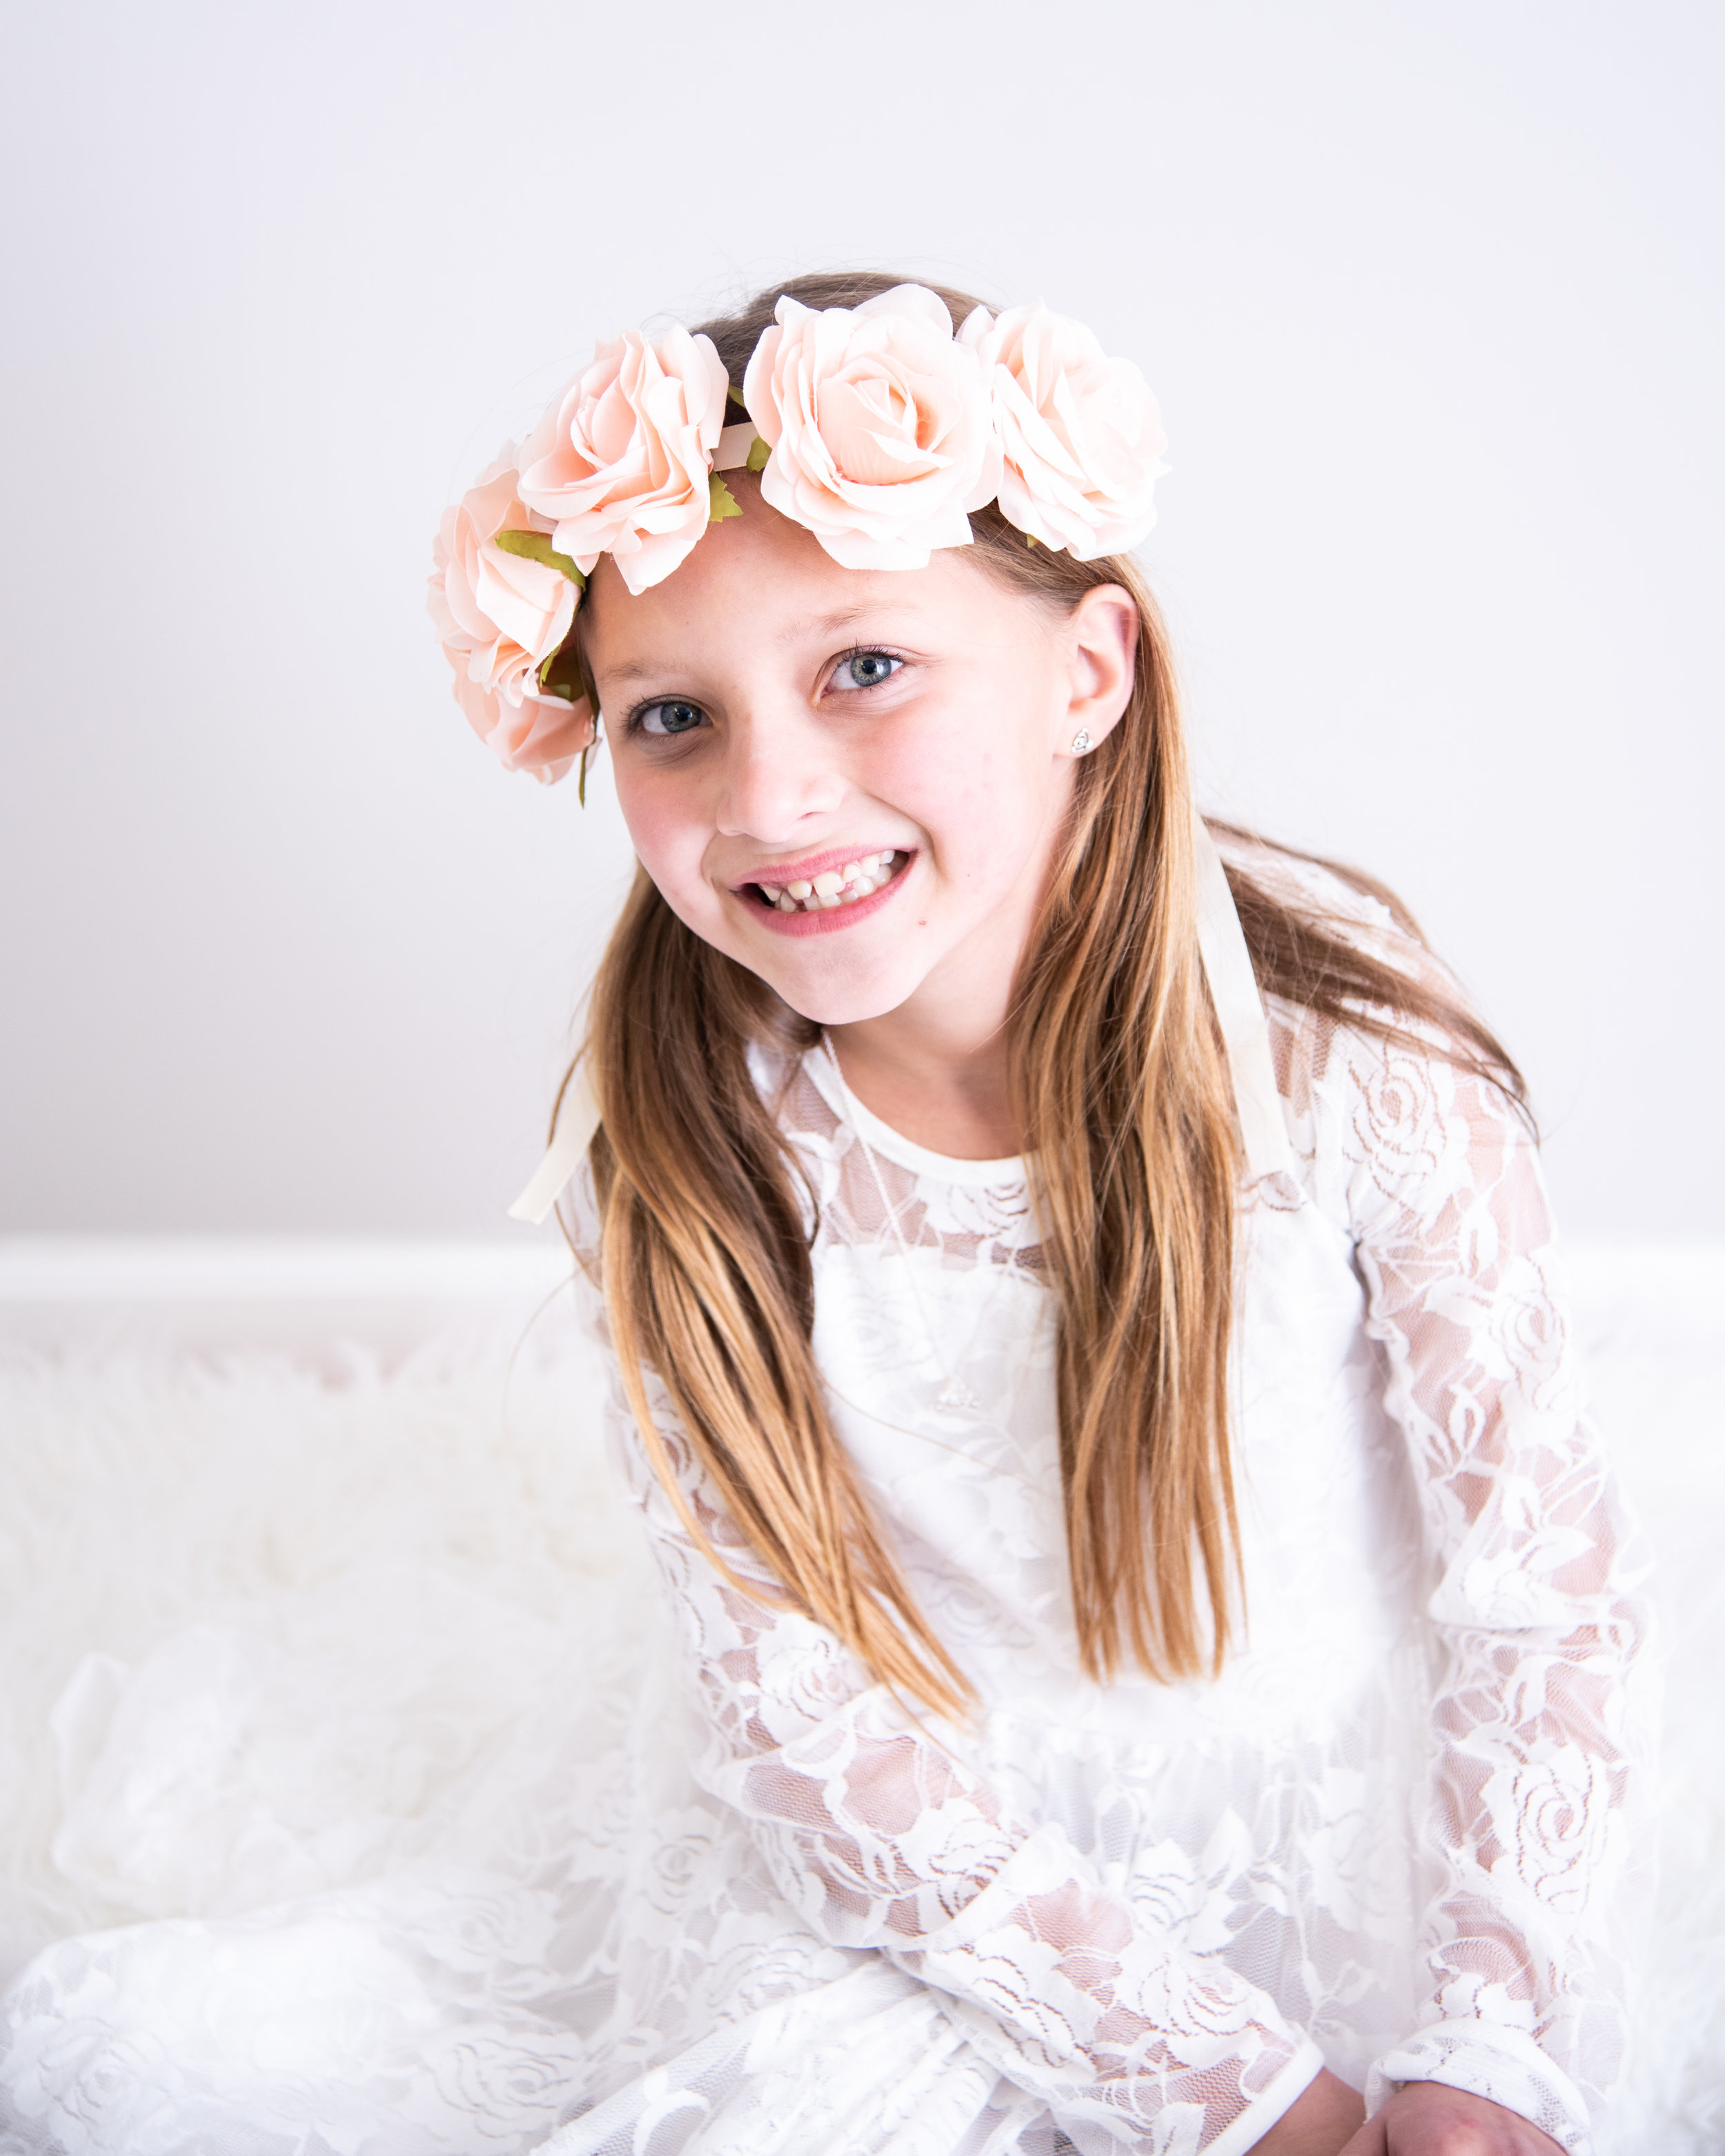 Kyla Jo Photography // Muncie, Indiana Photographer // Indiana Photographer // Midwest Photographer // kids photographer // studio photographer // children photographer // portrait photographer // studio photographer in delaware county // floral headband // boho photographer